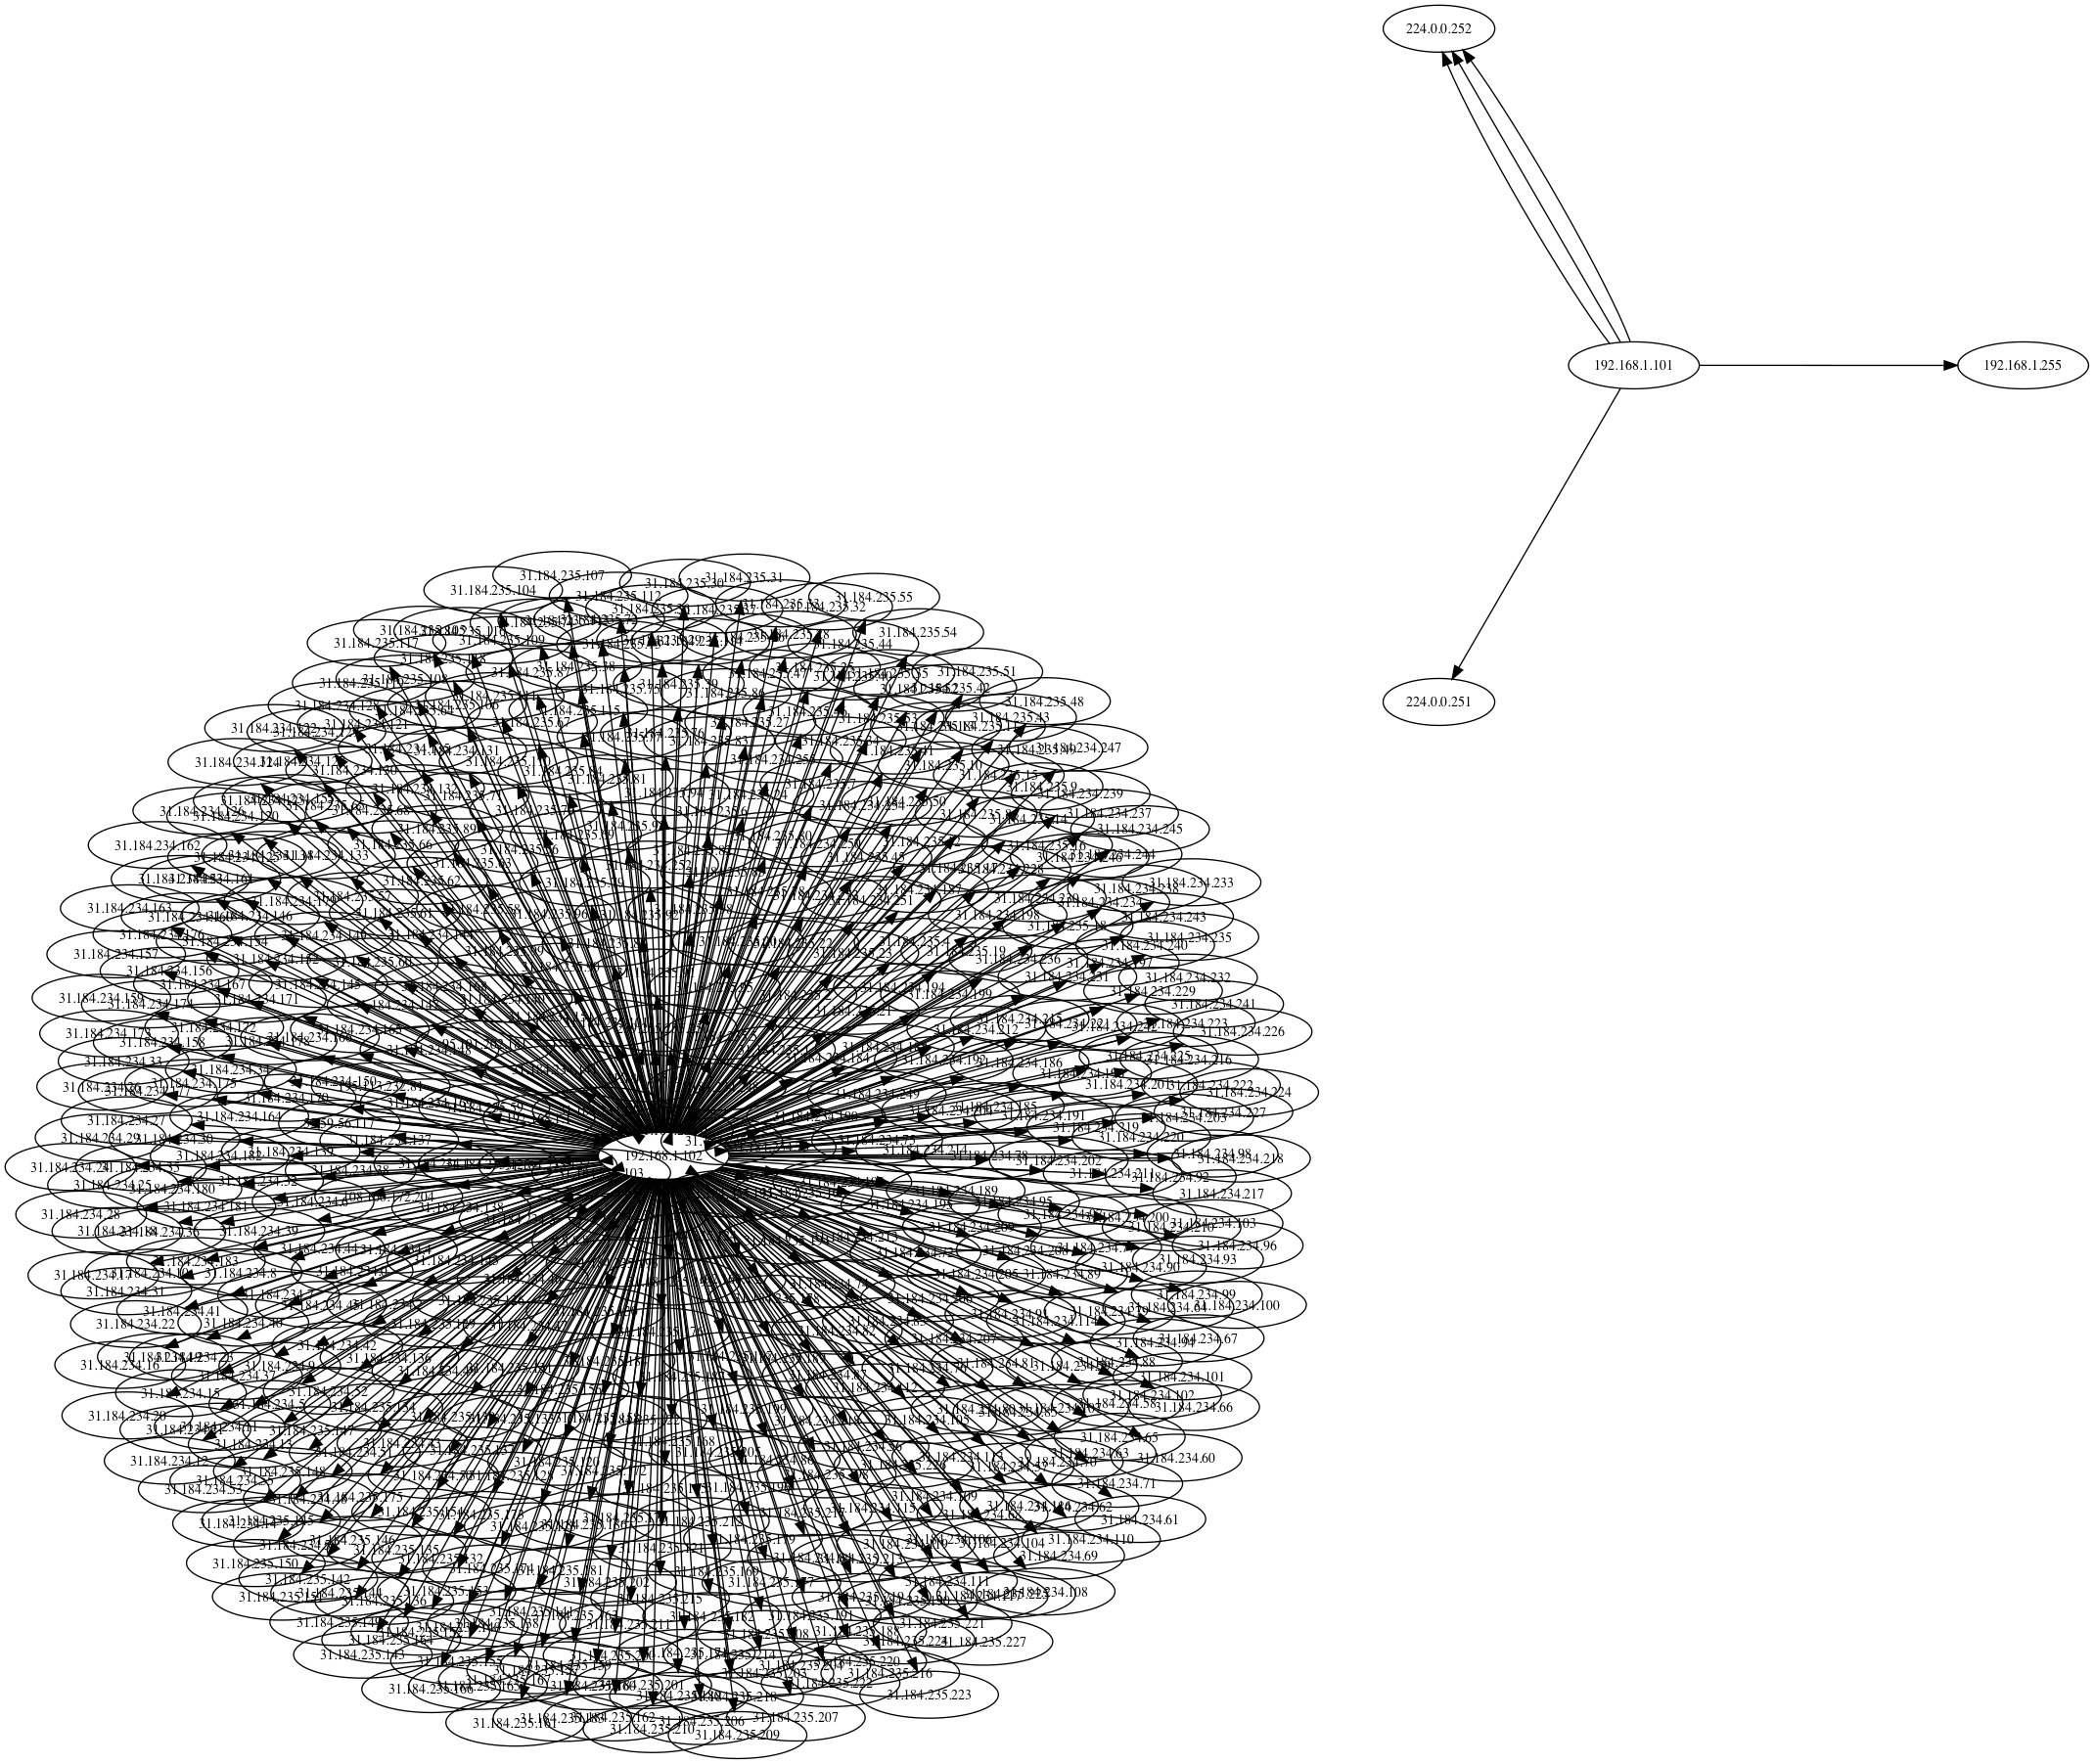 There are 400 connections in this graph.